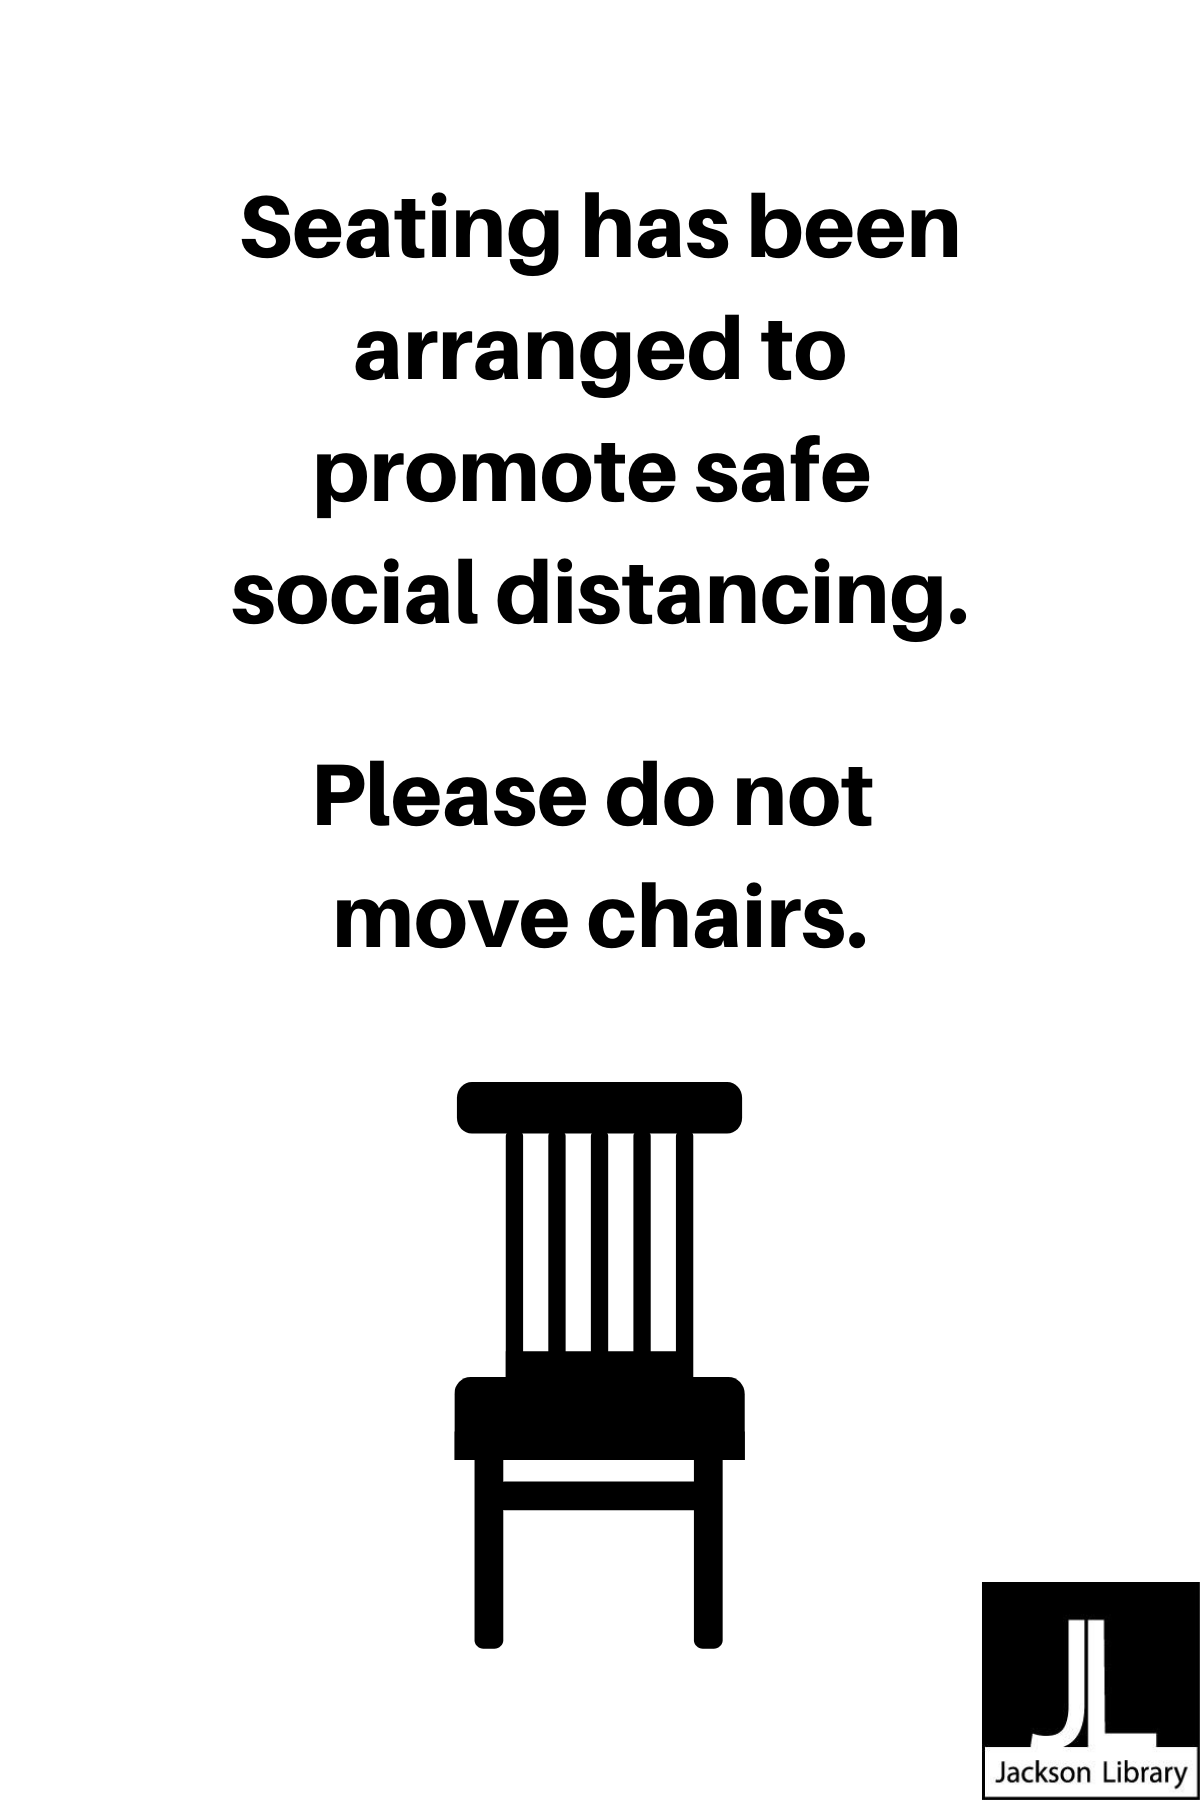 Please Do Not Move Chairs